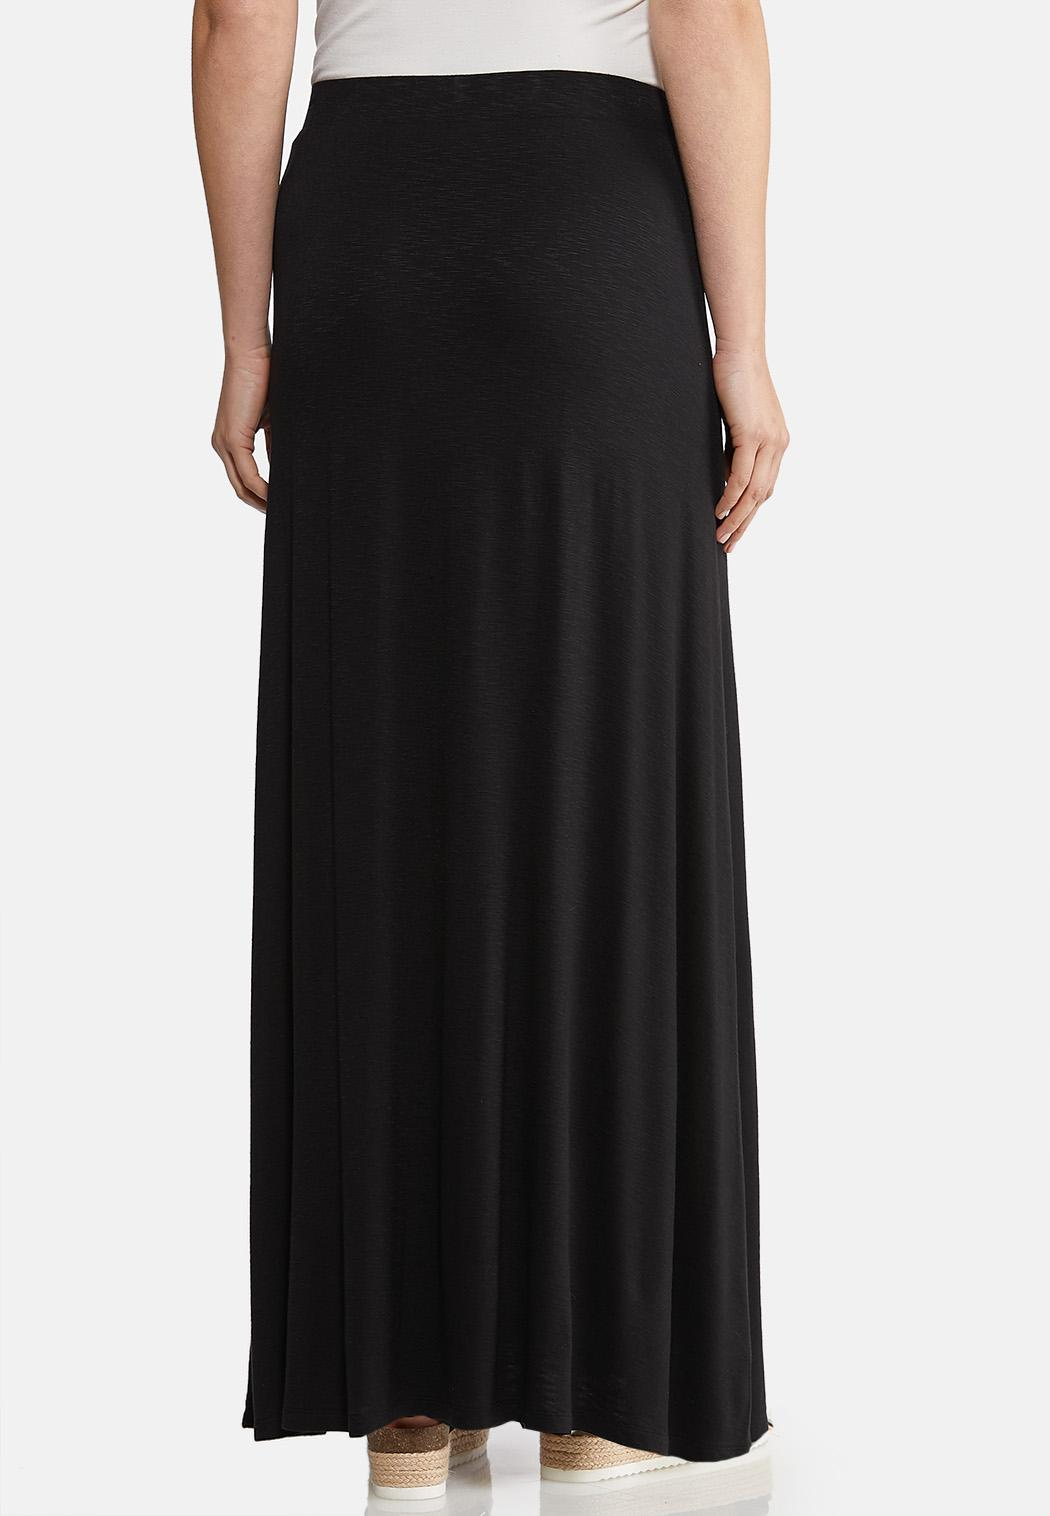 c34205a12 Plus Size Solid Knit Maxi Skirt alternate view ...